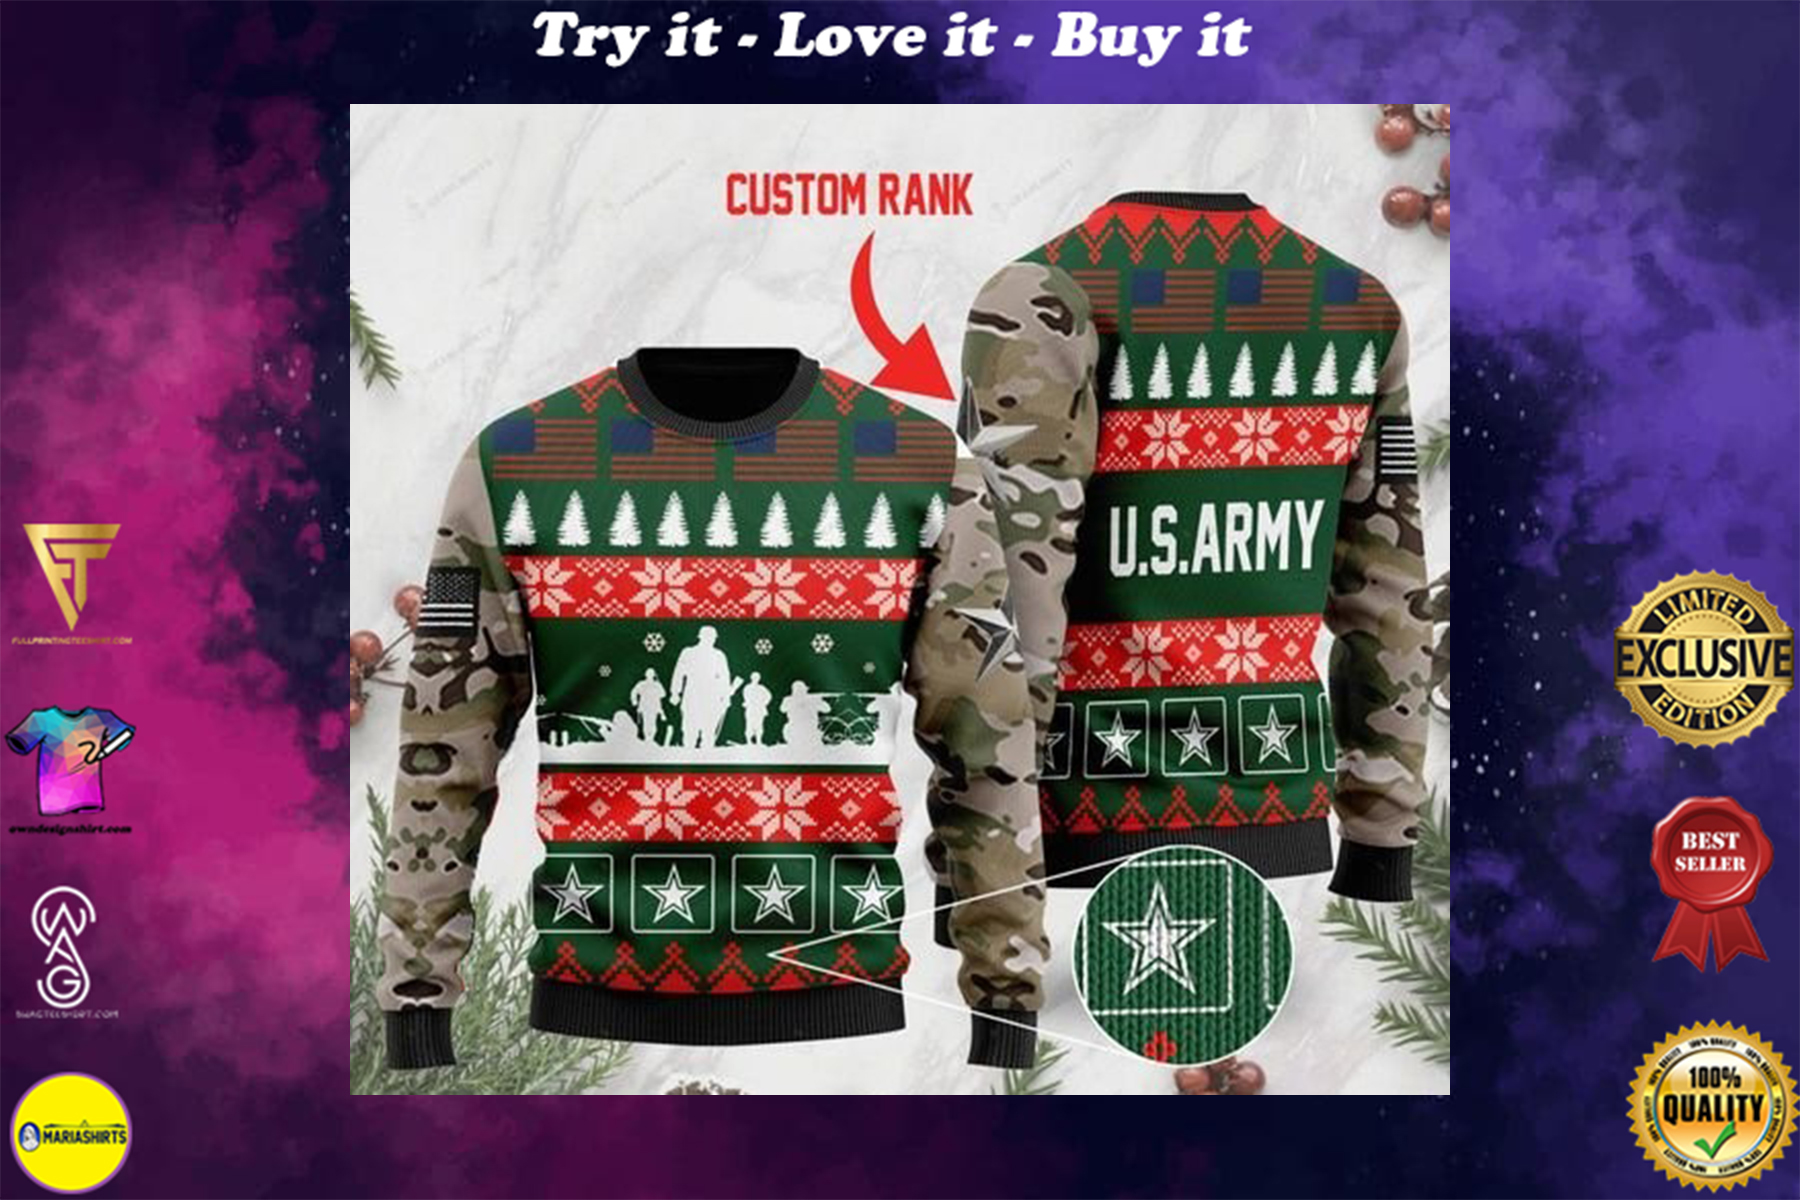 custom rank the united states army full printing ugly sweater